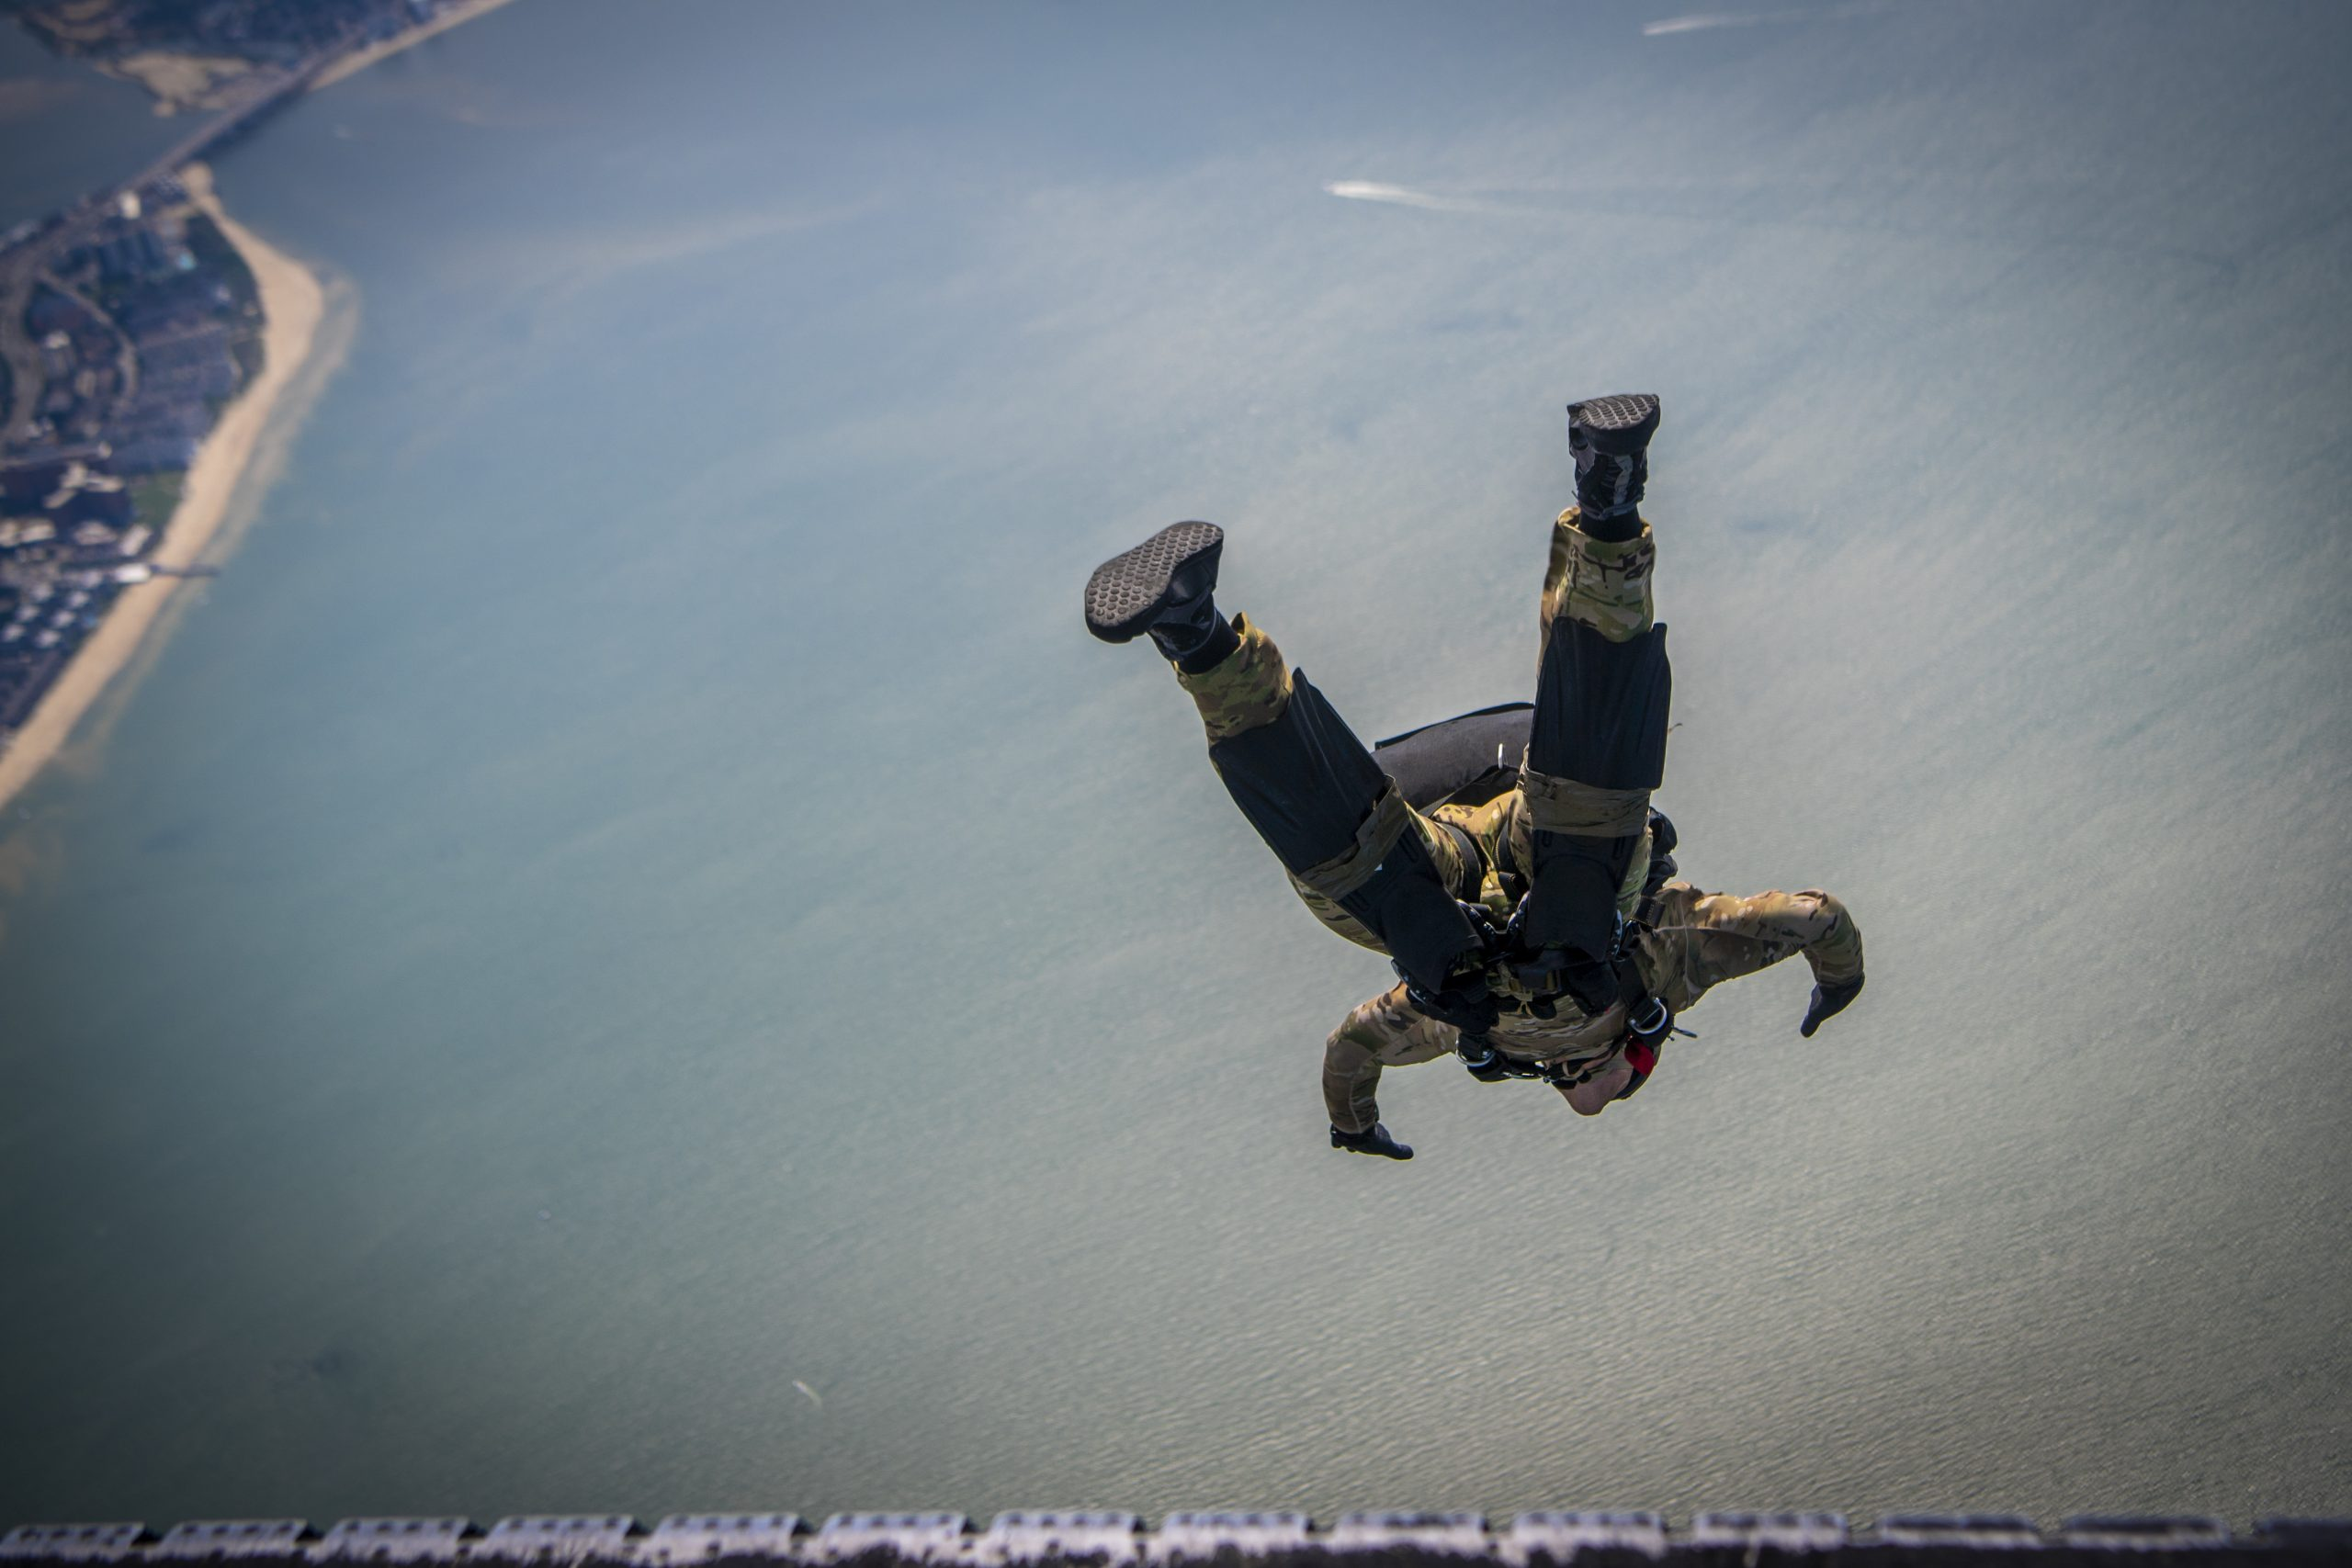 VIRGINIA BEACH, Va. (July 7, 2020) An East coast-based Navy SEAL conducts a military freefall jump from a C-2 Greyhound from the Rawhides of Fleet Logistics Support Squadron 40 during training above Chesapeake Bay. Naval Special Warfare Command is committed to its Sailors and the deliberate assessment and development of their tactical excellence, ethics, and leadership as the nation's premiere maritime special operations force supporting the National Defense Strategy. It is the maritime component of United States Special Operation Command, and its mission is to provide maritime special operations forces to conduct full-spectrum operations, unilaterally or with partners, to support national objectives. (U.S. Navy photo by Mass Communication Specialist First Class Scott Fenaroli)